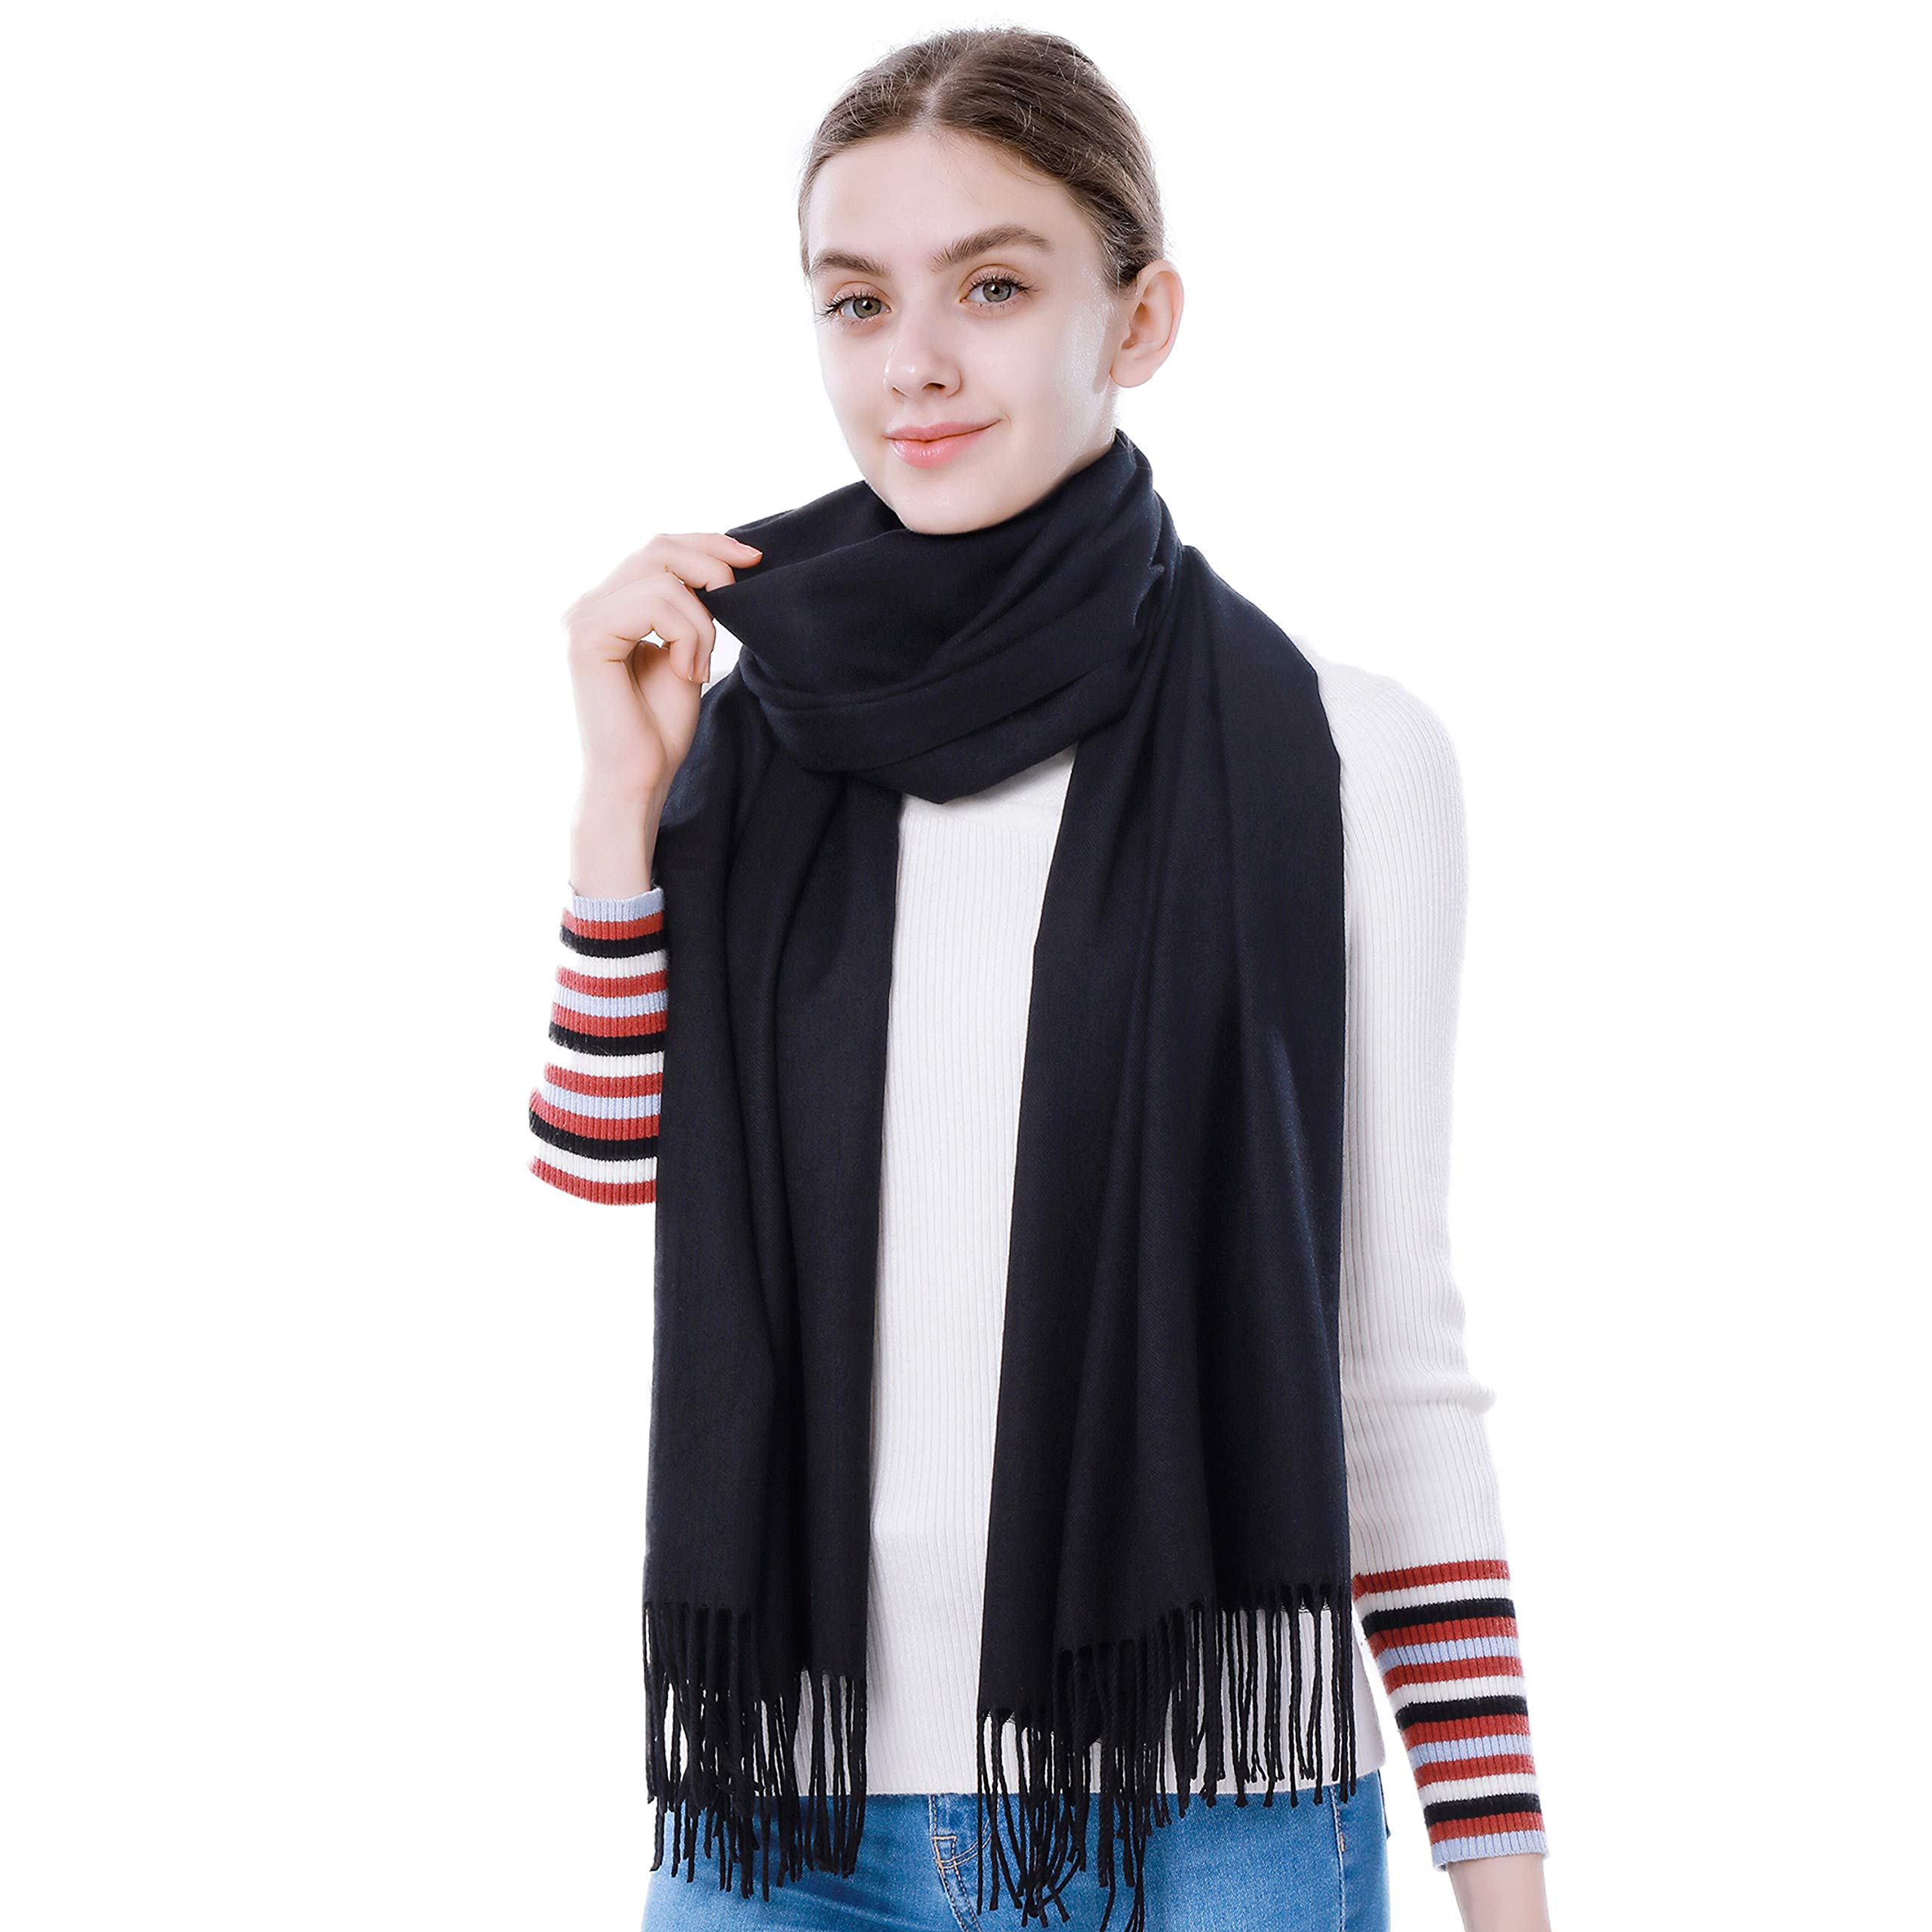 Cashmere Pashmina Scarf and Shawl - Soft Women Pashminas (20 Colors)